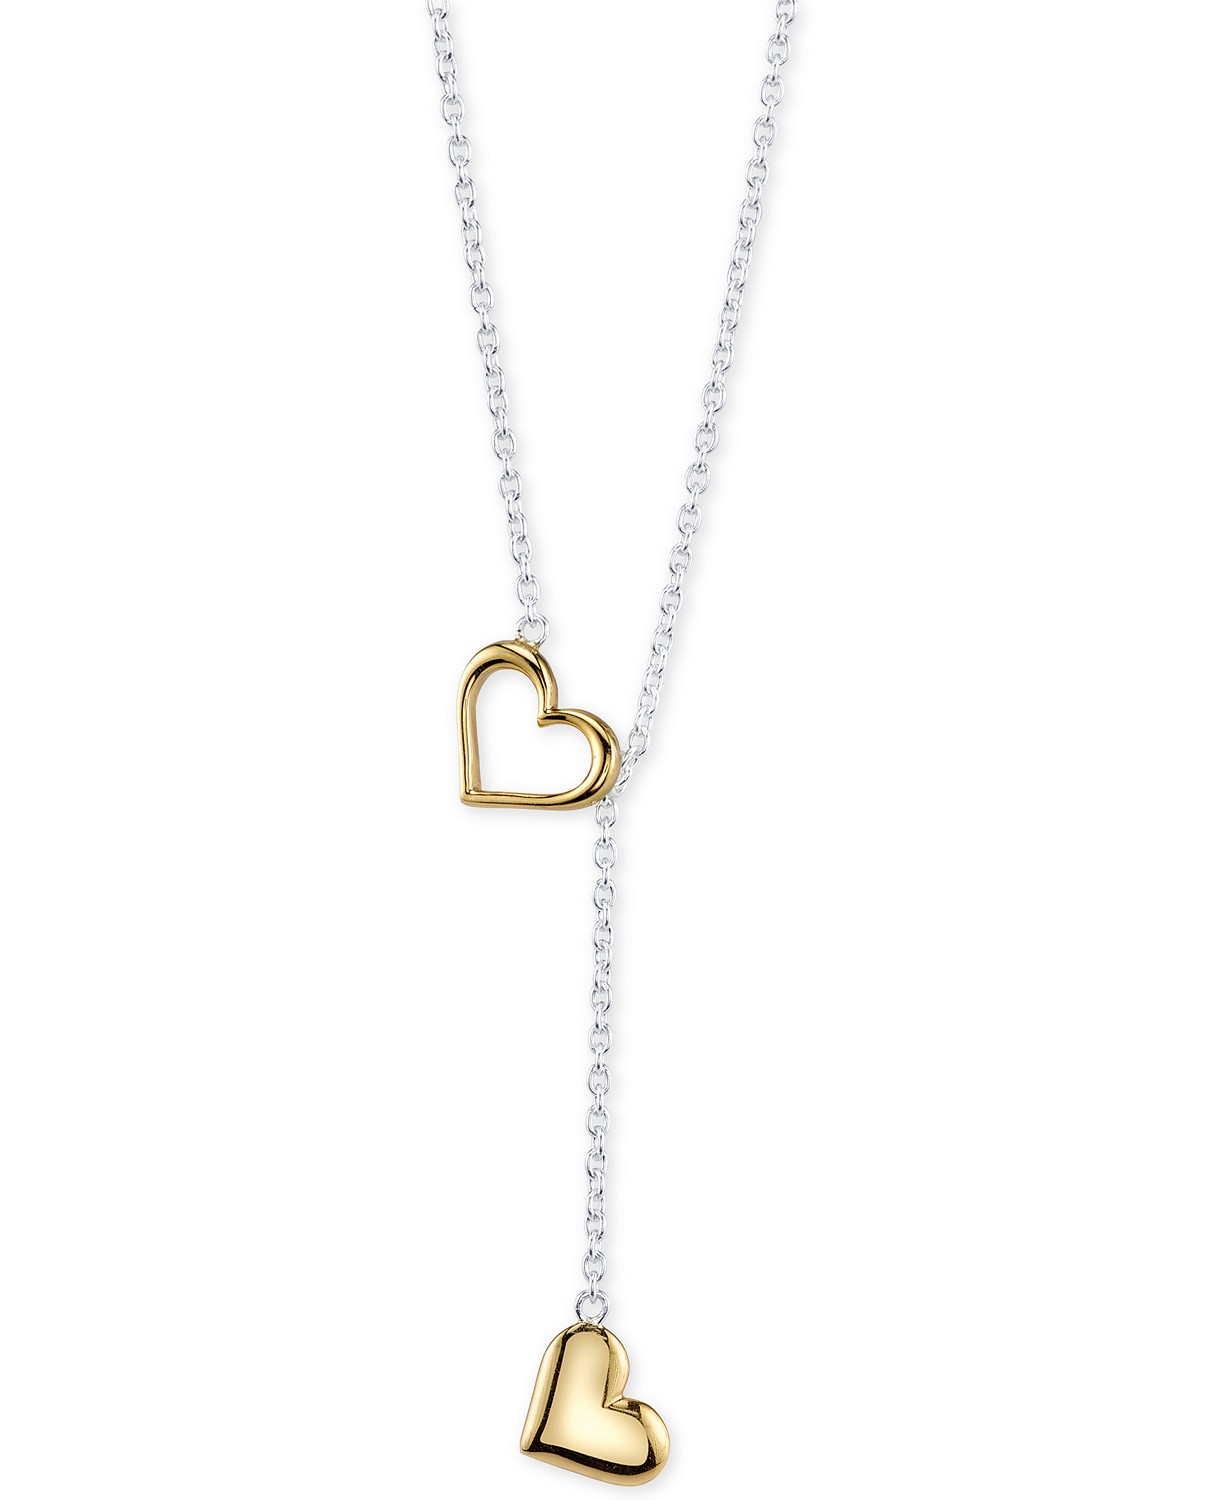 (75% OFF Deal) Two-Tone Heart Lariat Necklace in Sterling Silver and Gold-Plate  $25.00